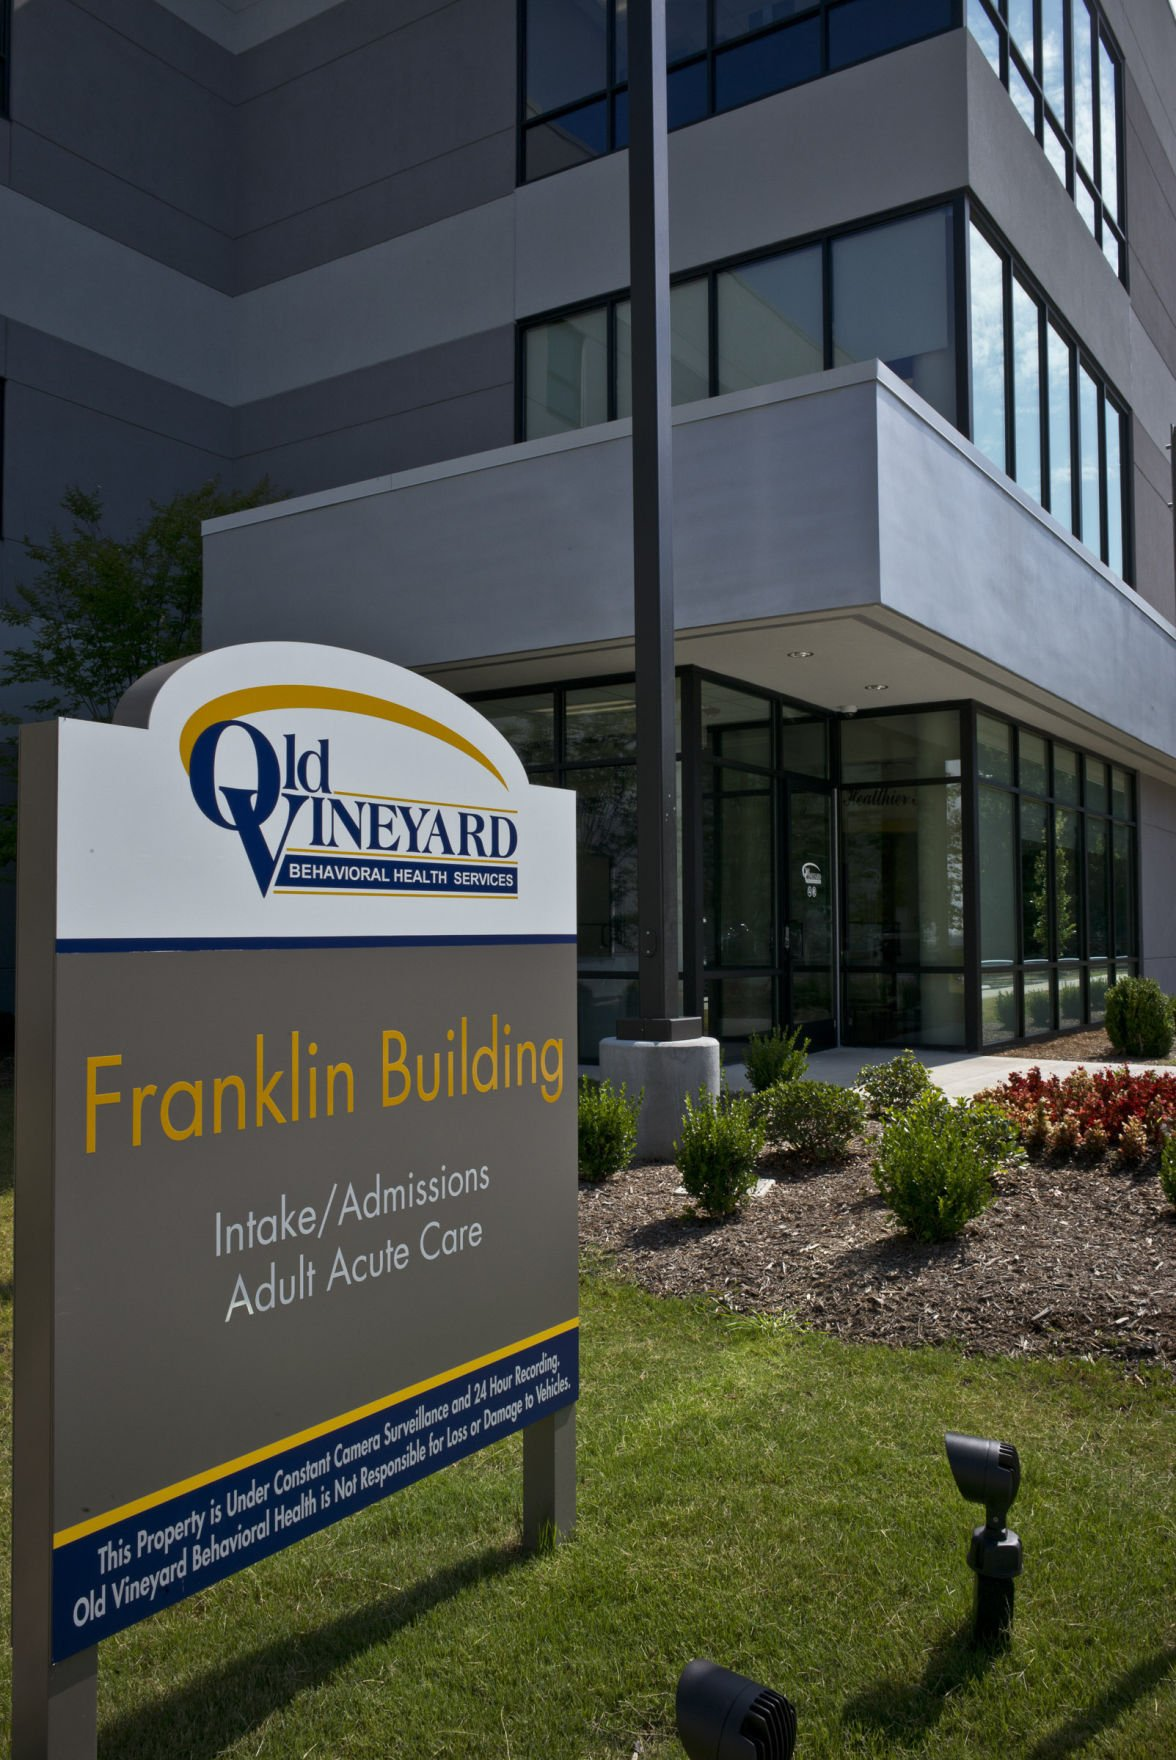 Old Vineyard Adds 60 Beds For Behavioral Health Patients Local